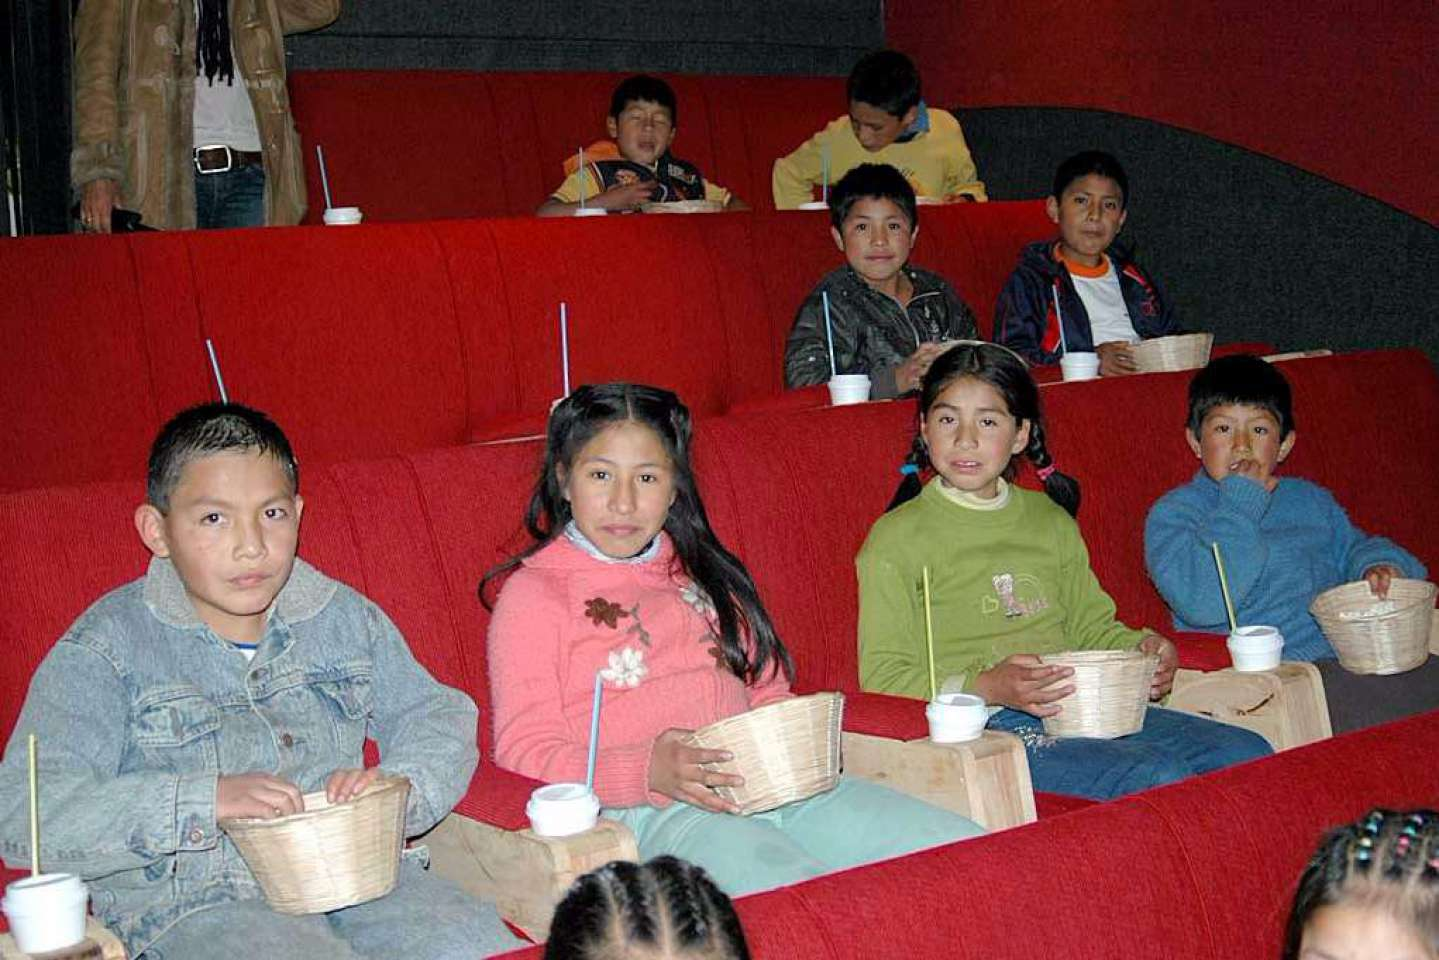 Cinema for children